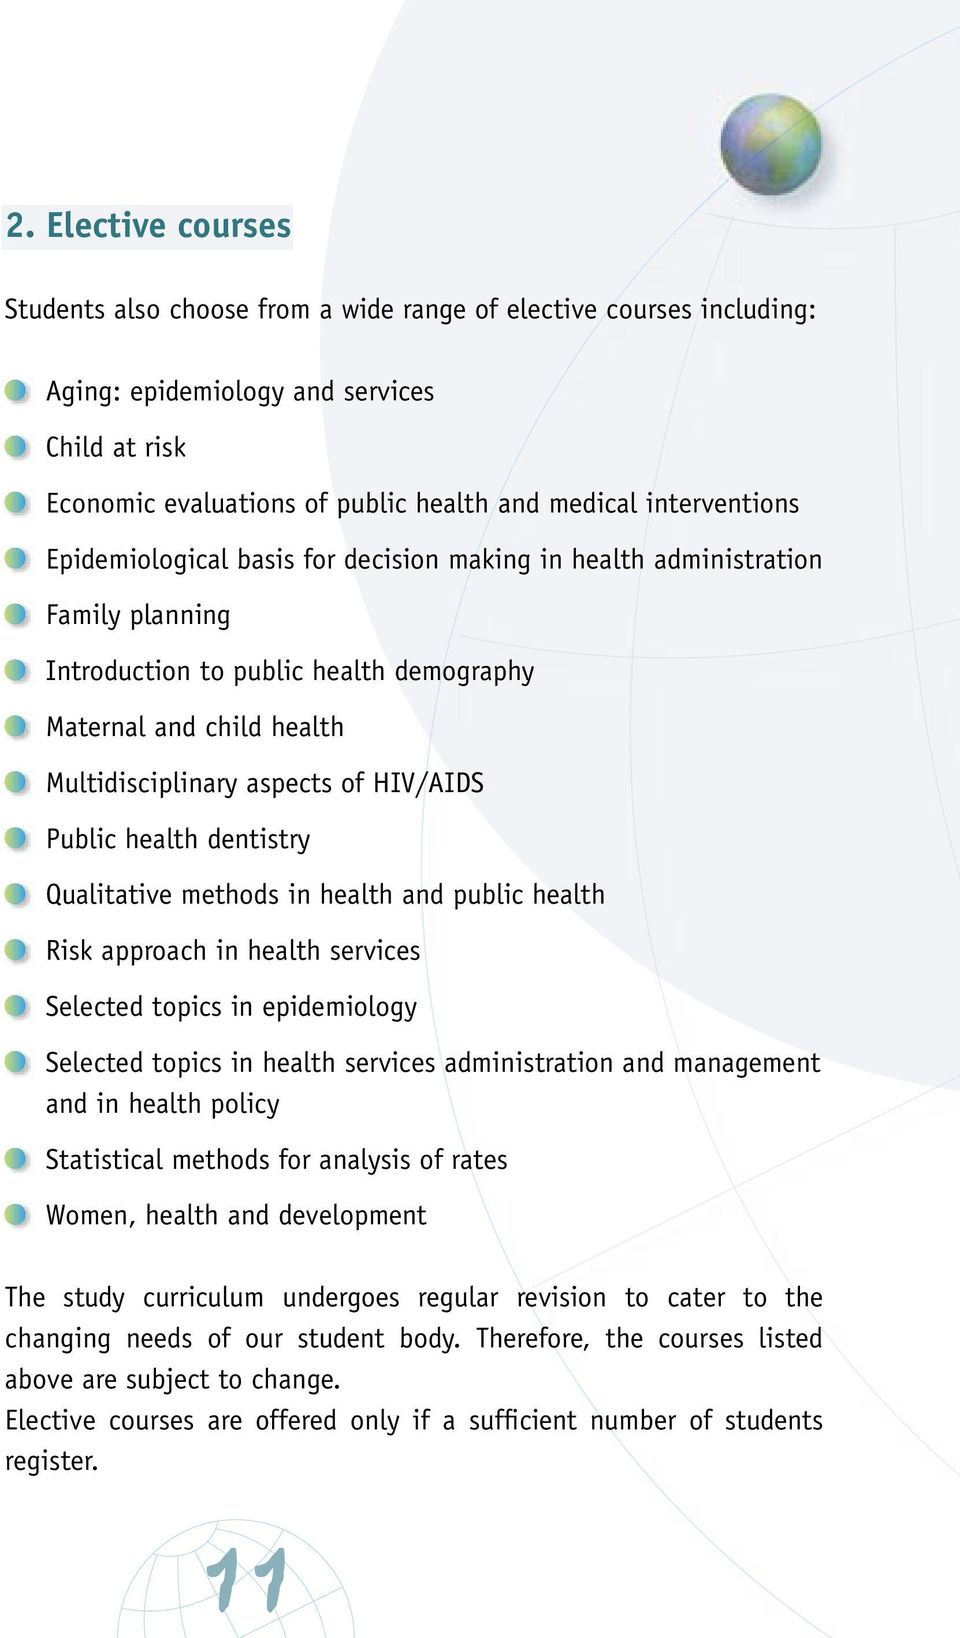 HIV/AIDS Public health dentistry Qualitative methods in health and public health Risk approach in health services Selected topics in epidemiology Selected topics in health services administration and